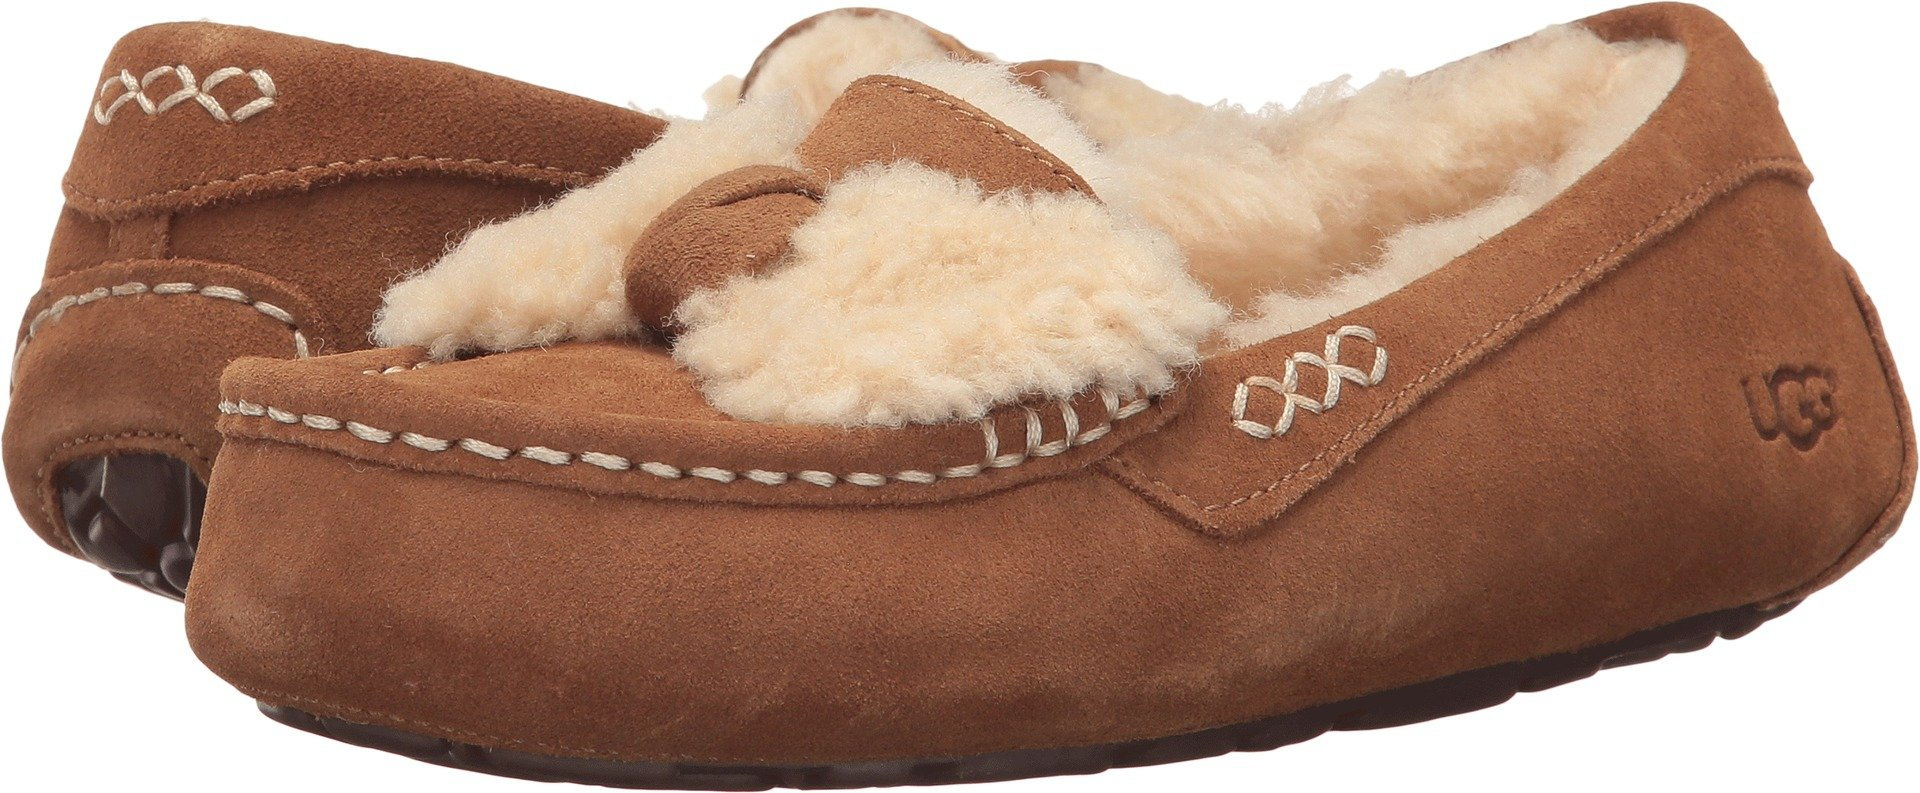 UGG Women's Ansley Fur Bow Slipper Chestnut Size 8 B(M) US